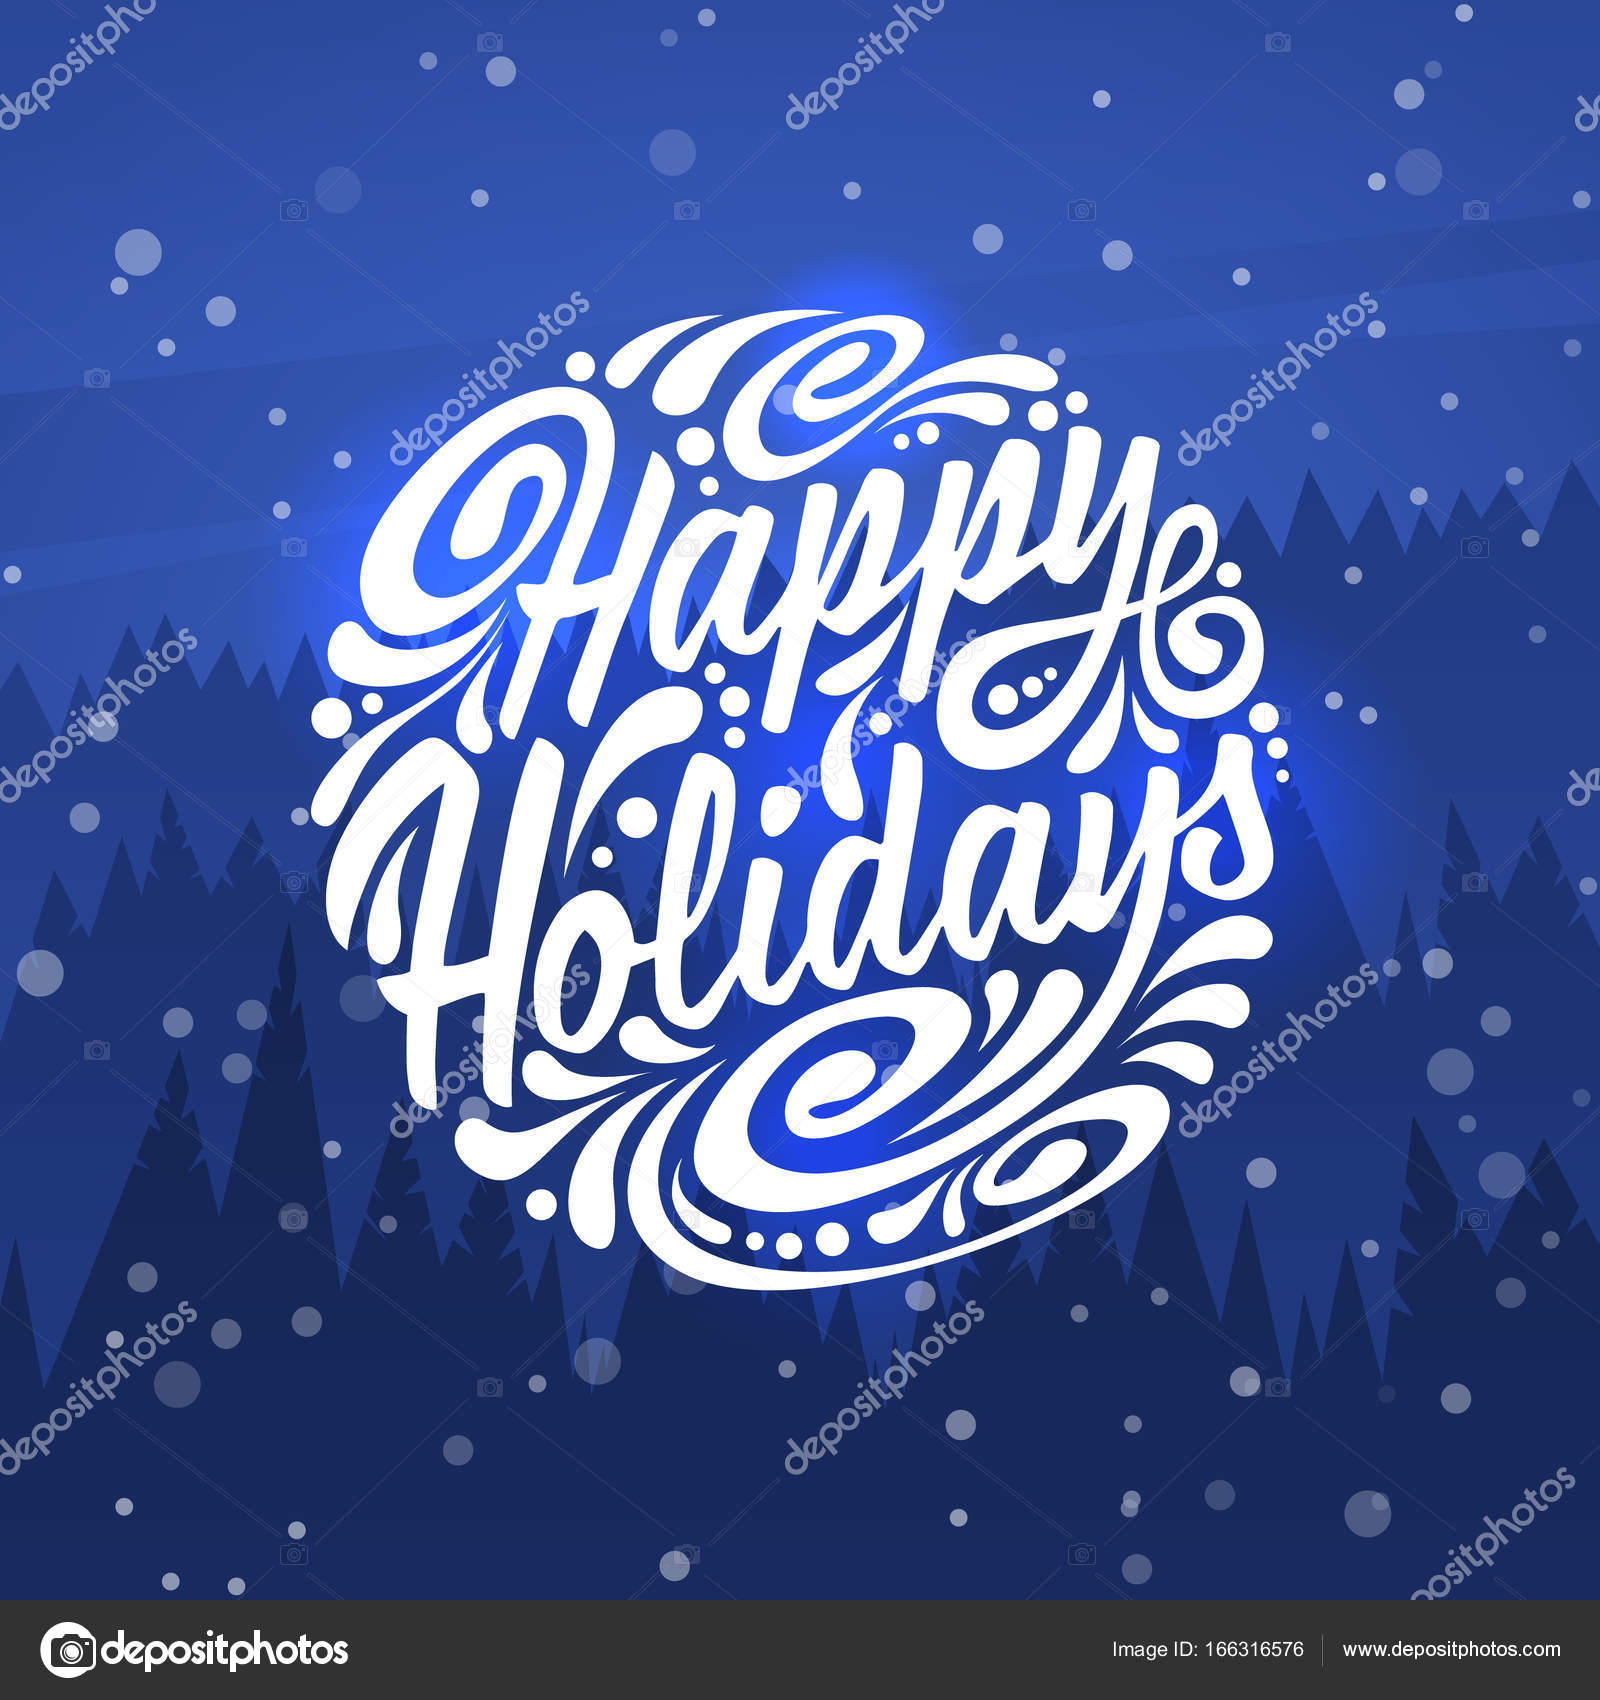 Happy Holidays Holidays Greeting Card Stock Vector Greeek